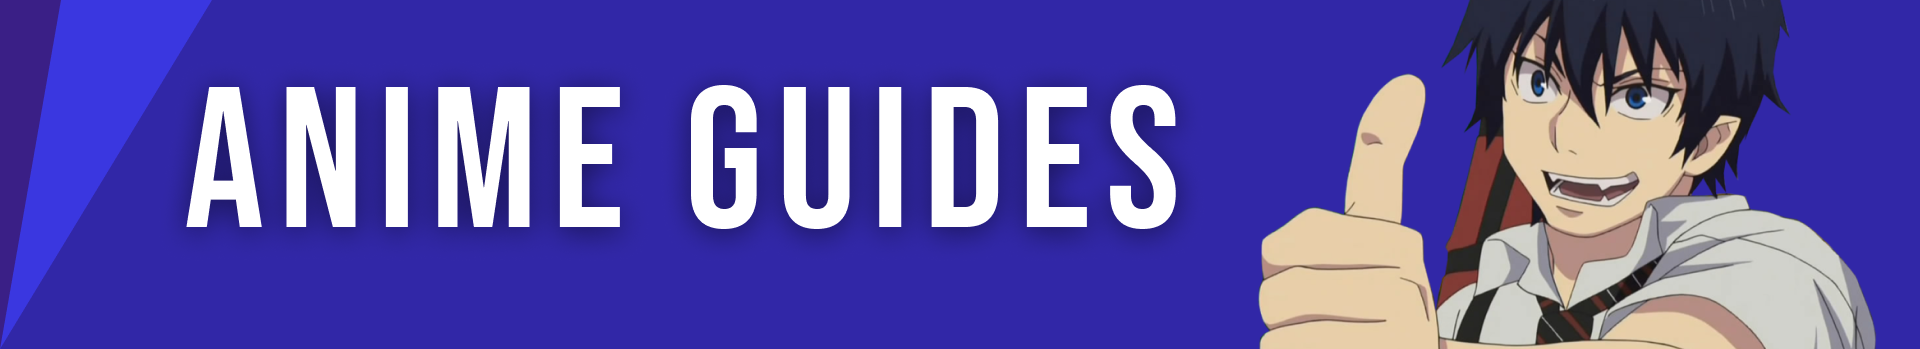 Anime Guides